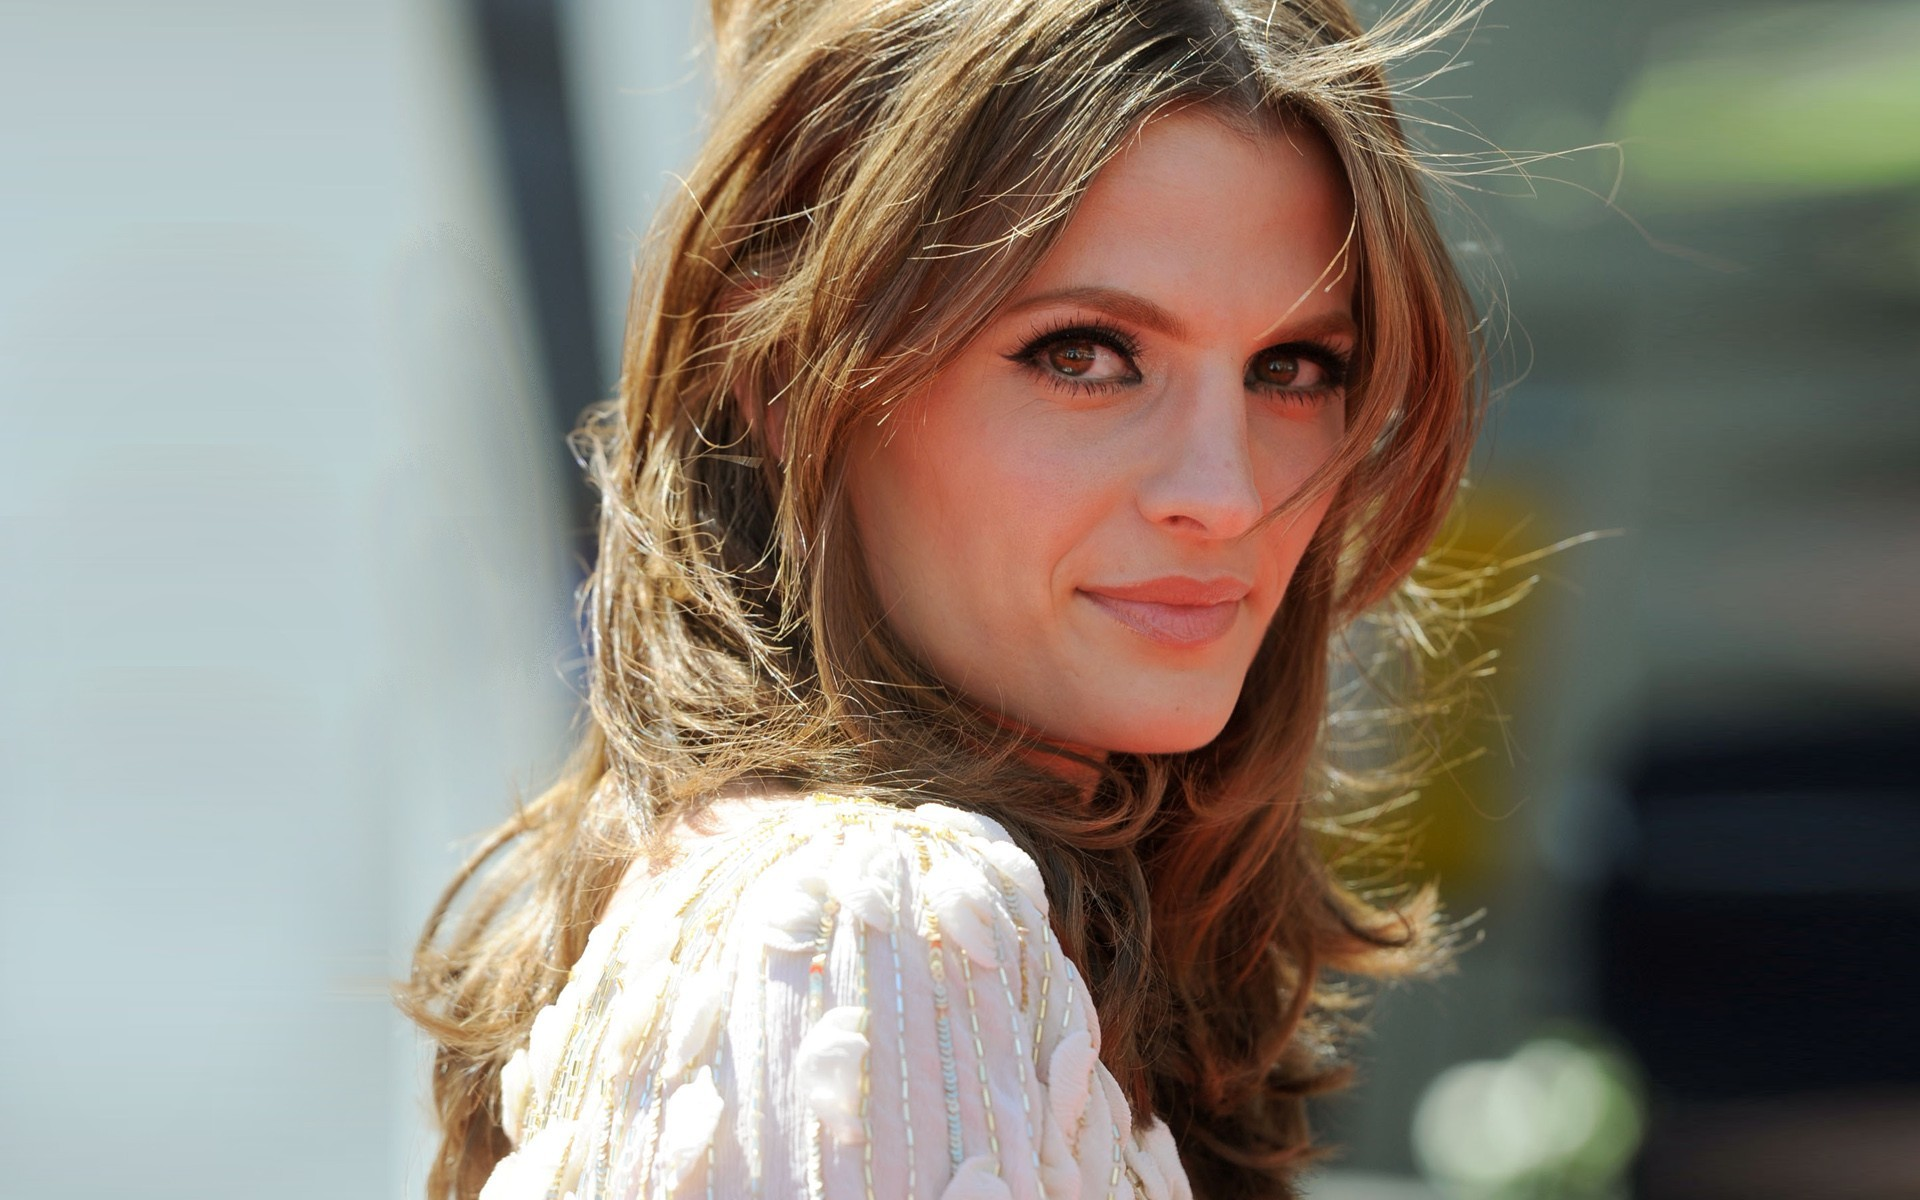 1920x1200 Stana Katic 1920 x 1200 HD Wallpaper